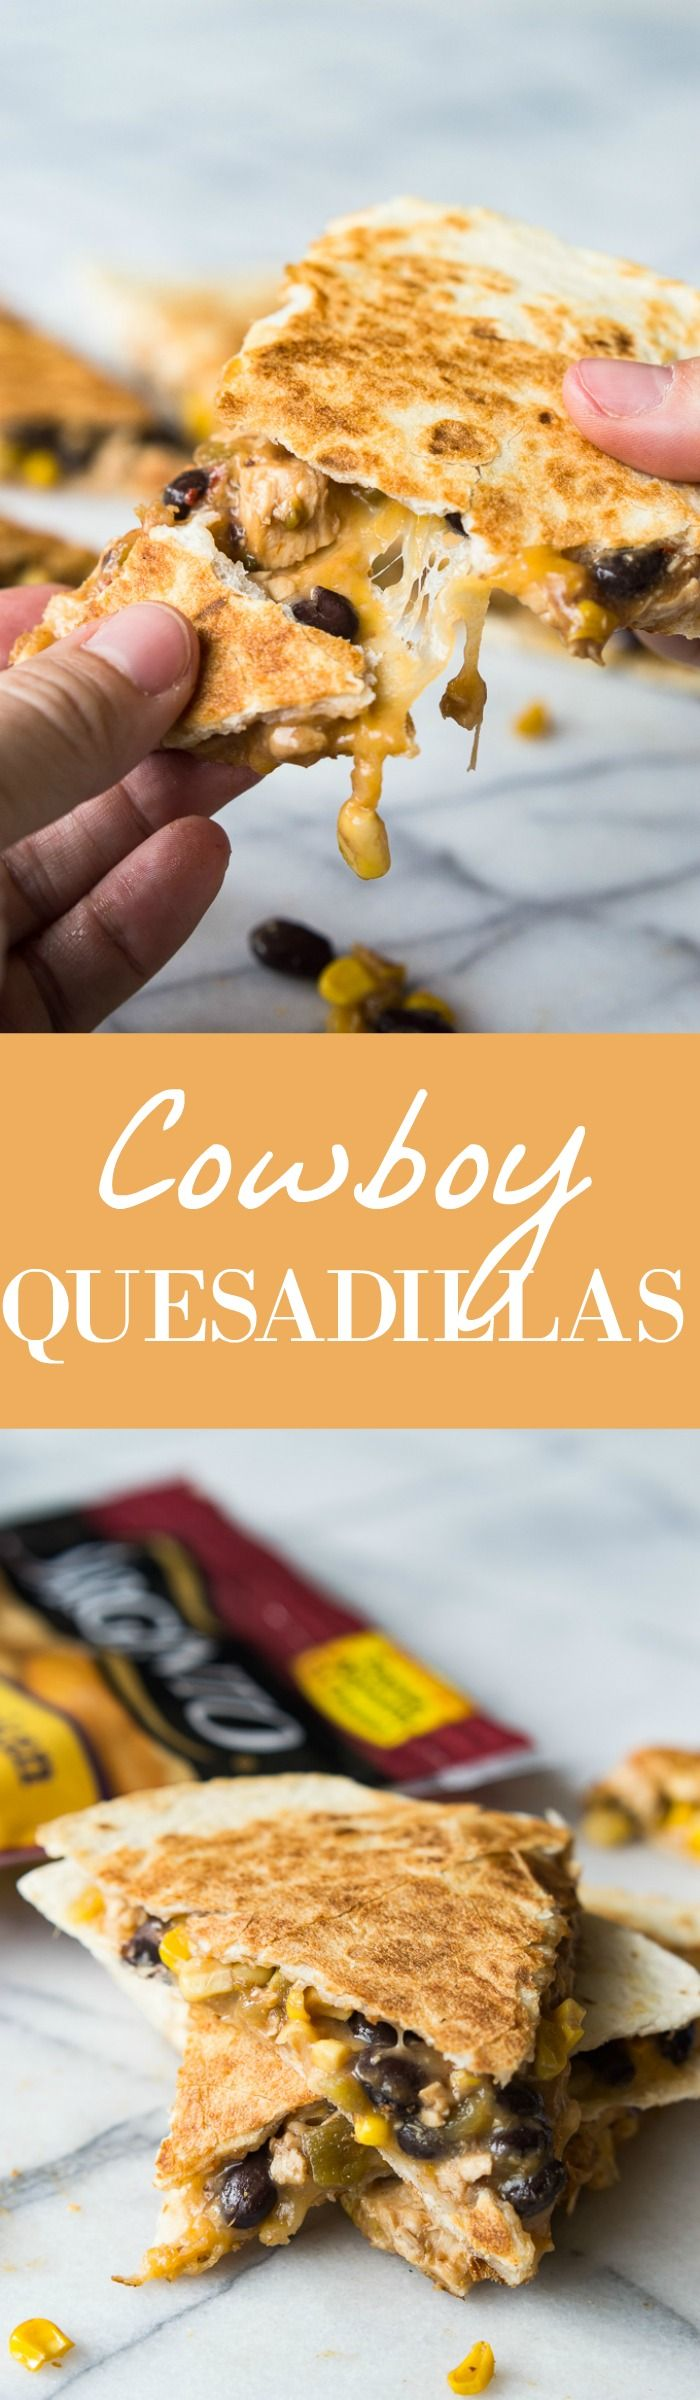 Whole Foods Market Cowboy Quesadilla